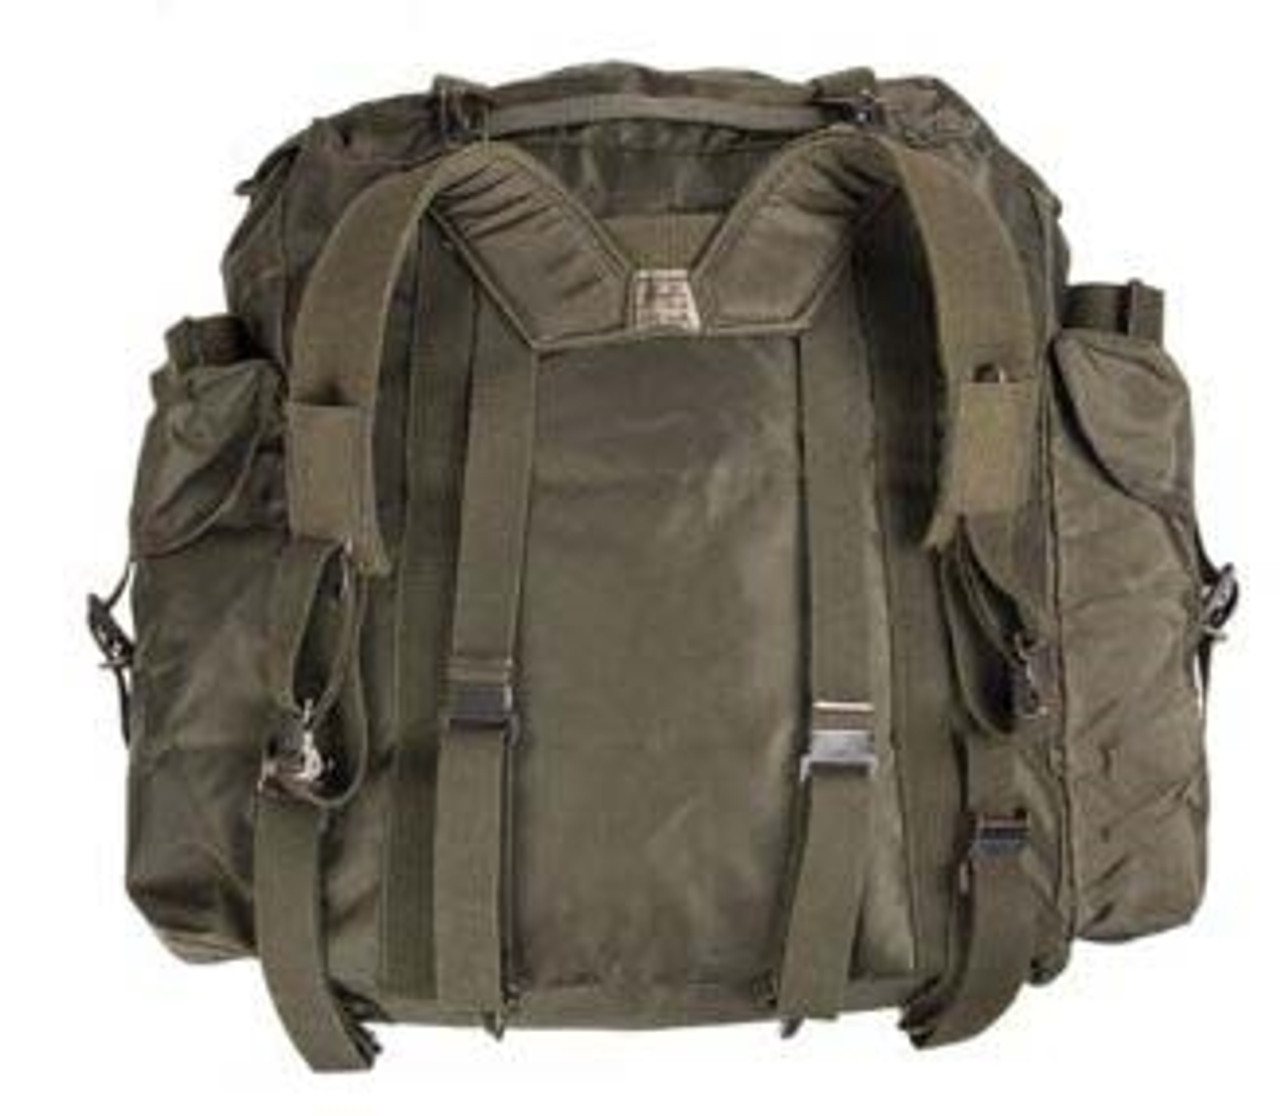 Austrian Army OD Nylon Rucksack With Suspenders from Hessen Antique